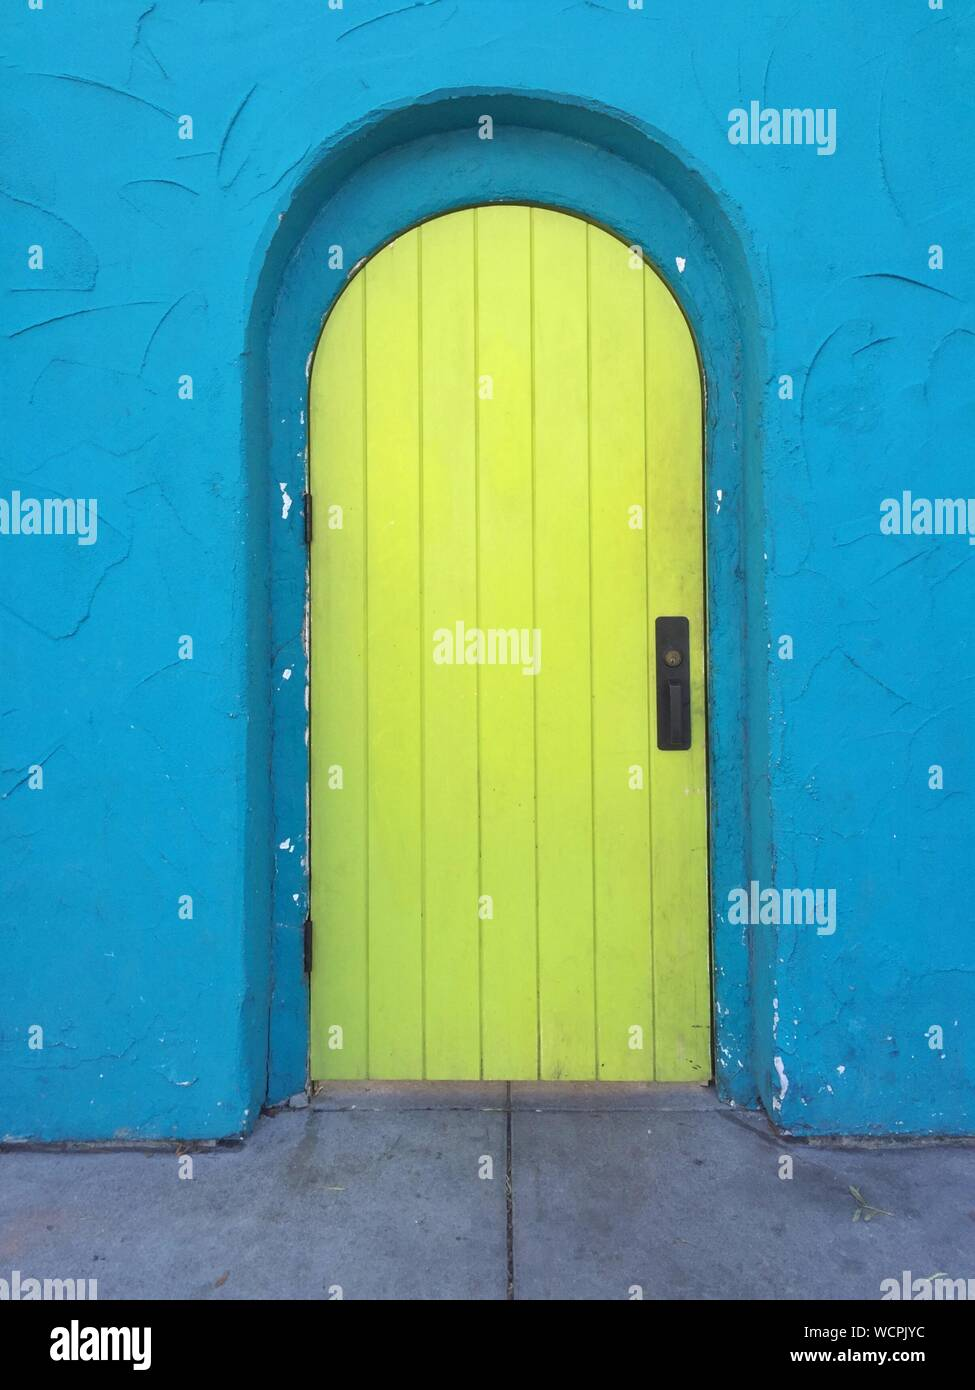 Yellow Door Of House Stock Photo Alamy